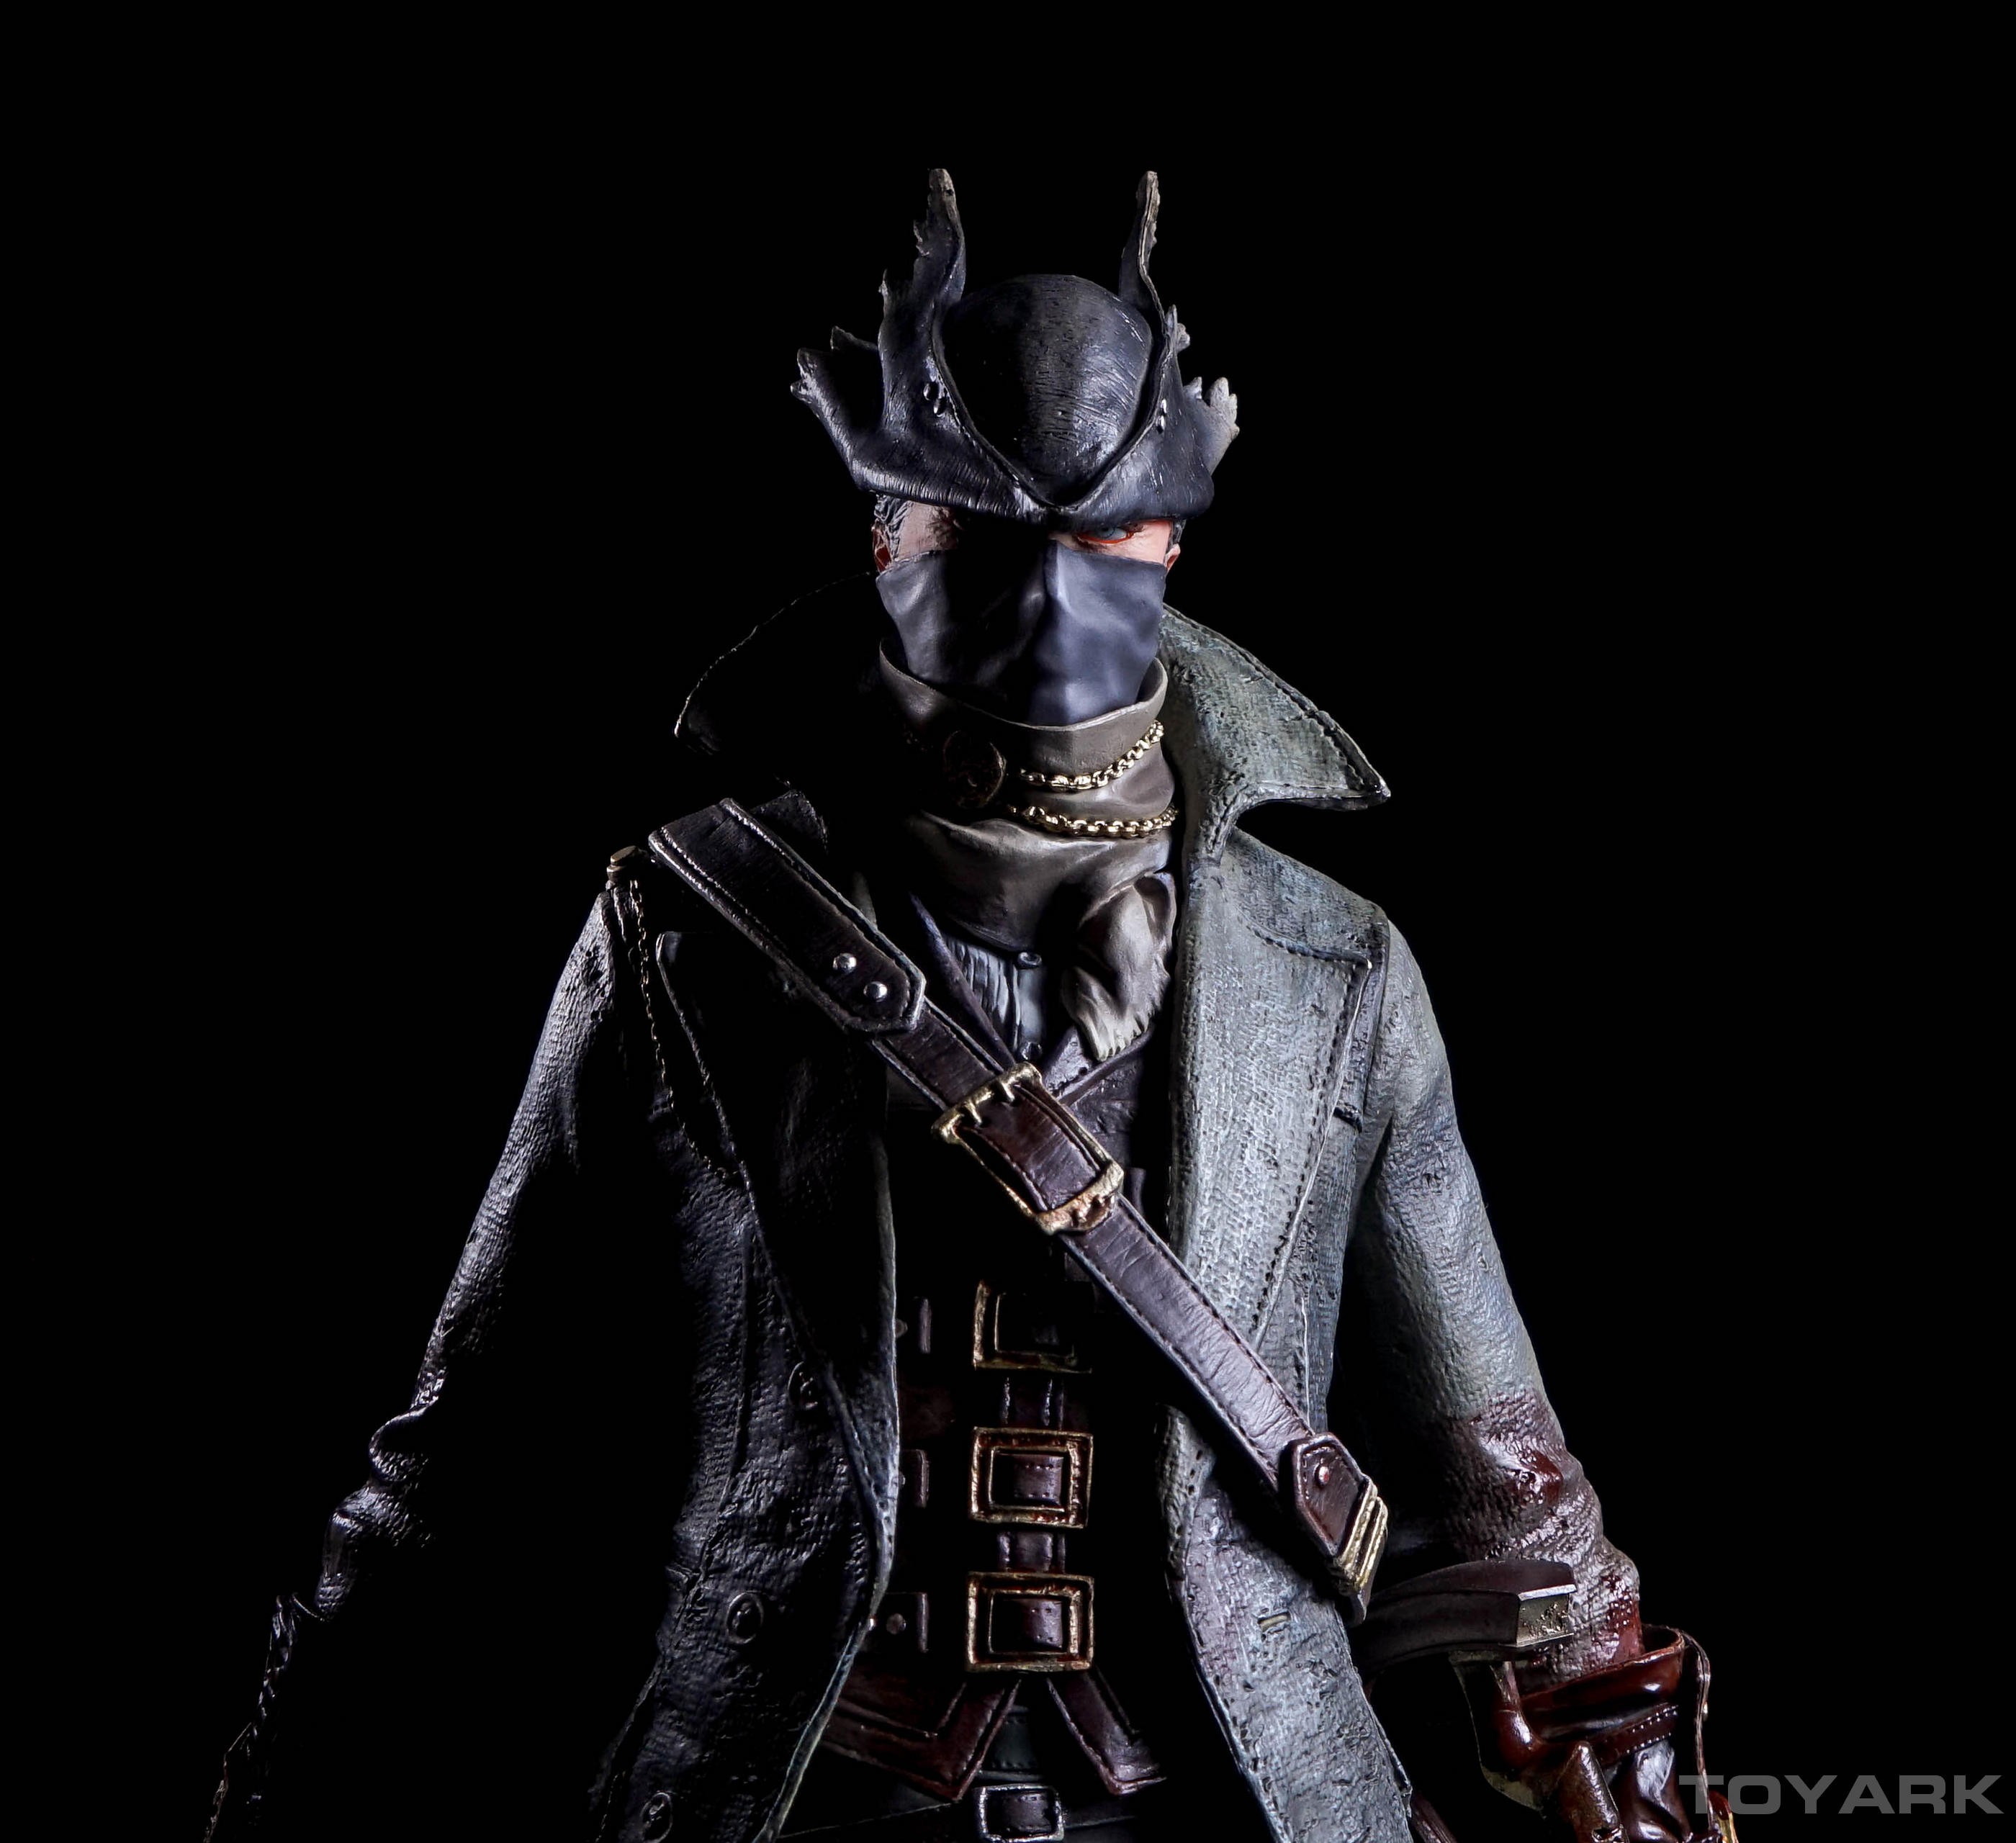 http://news.toyark.com/wp-content/uploads/sites/4/2016/02/Bloodborne-Hunter-PoB-Statue-041.jpg